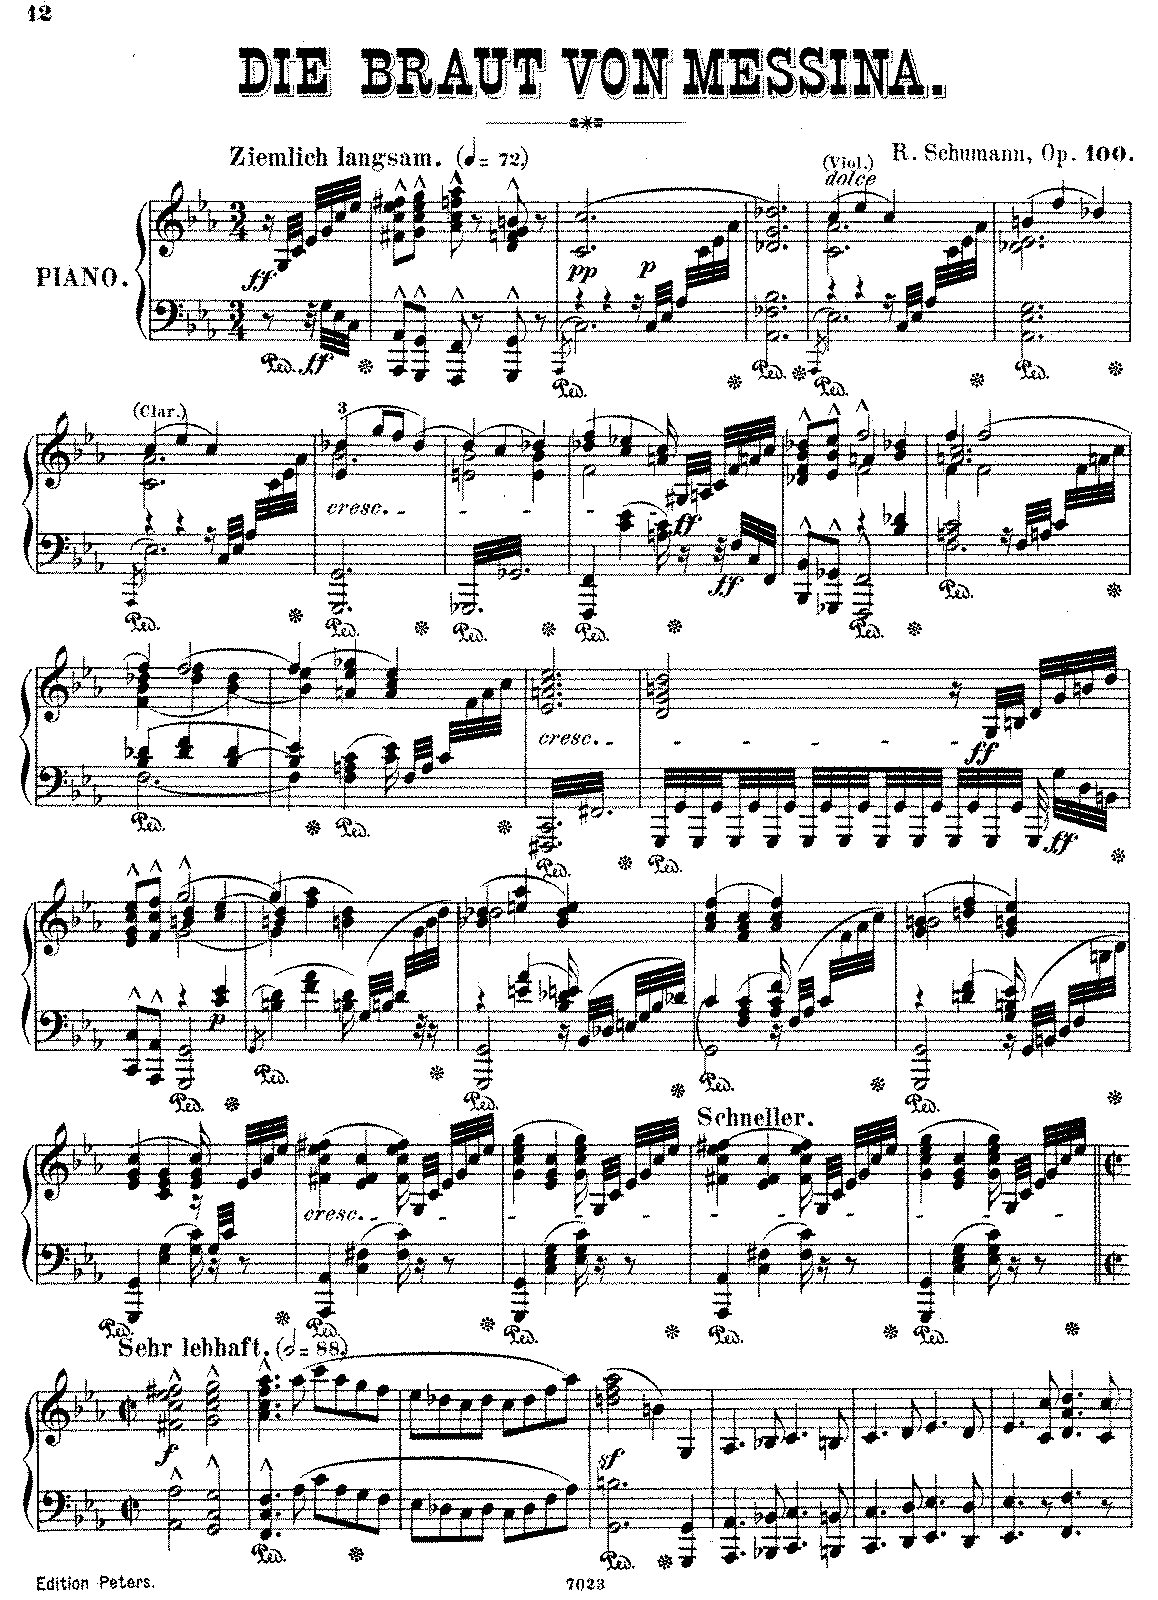 Schumann - Messina - Peters.pdf